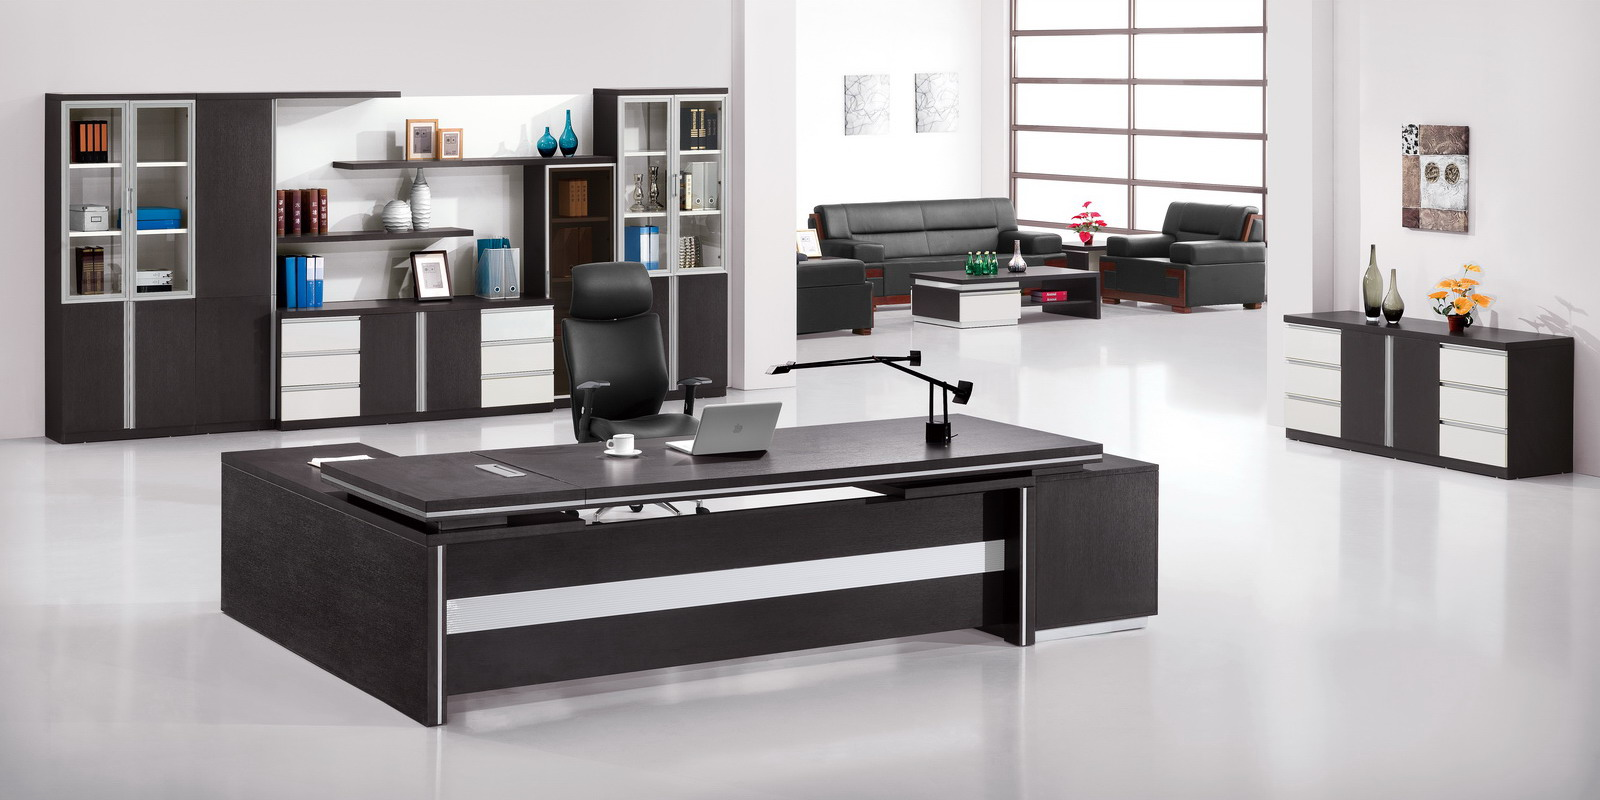 Tips on How to Take Care and Maintain Office Furniture and Fixtures